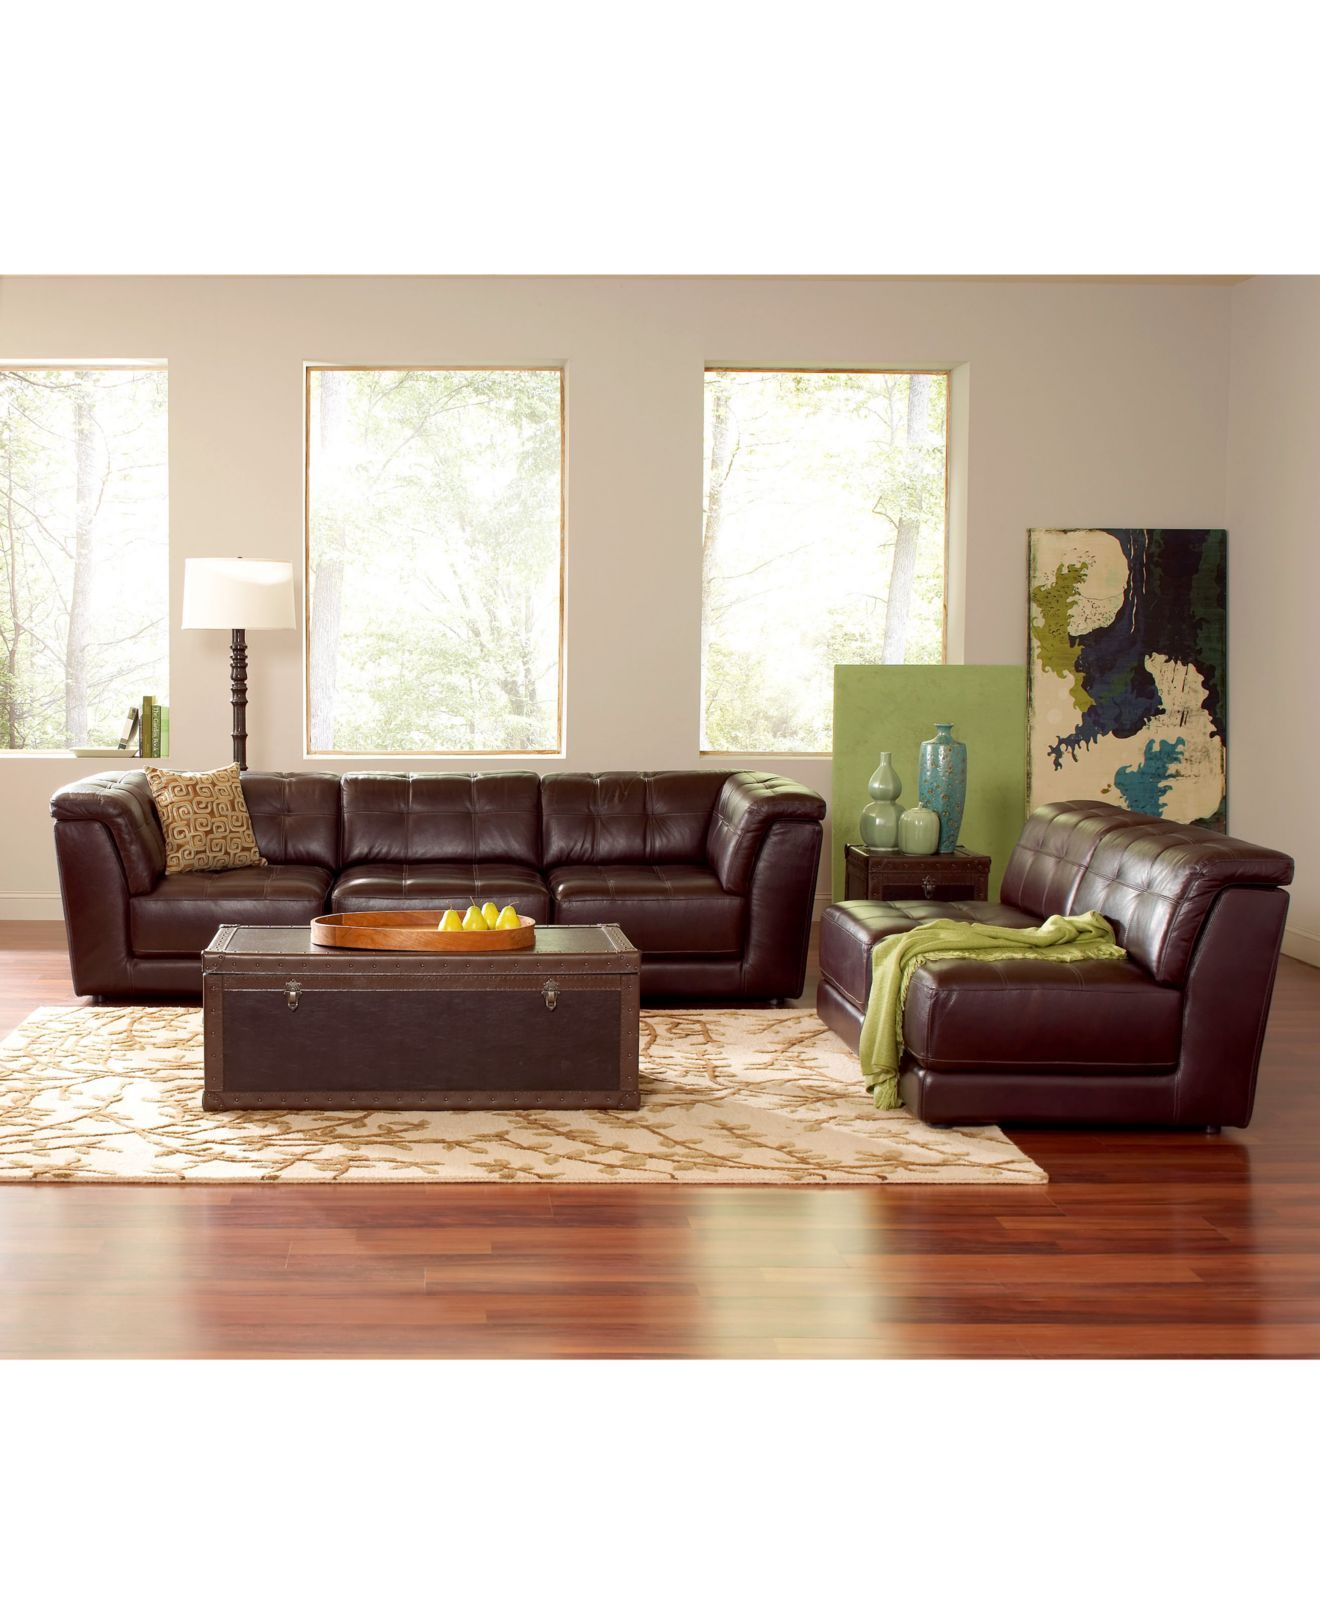 Stacey Leather Living Room Furniture Sets & Pieces